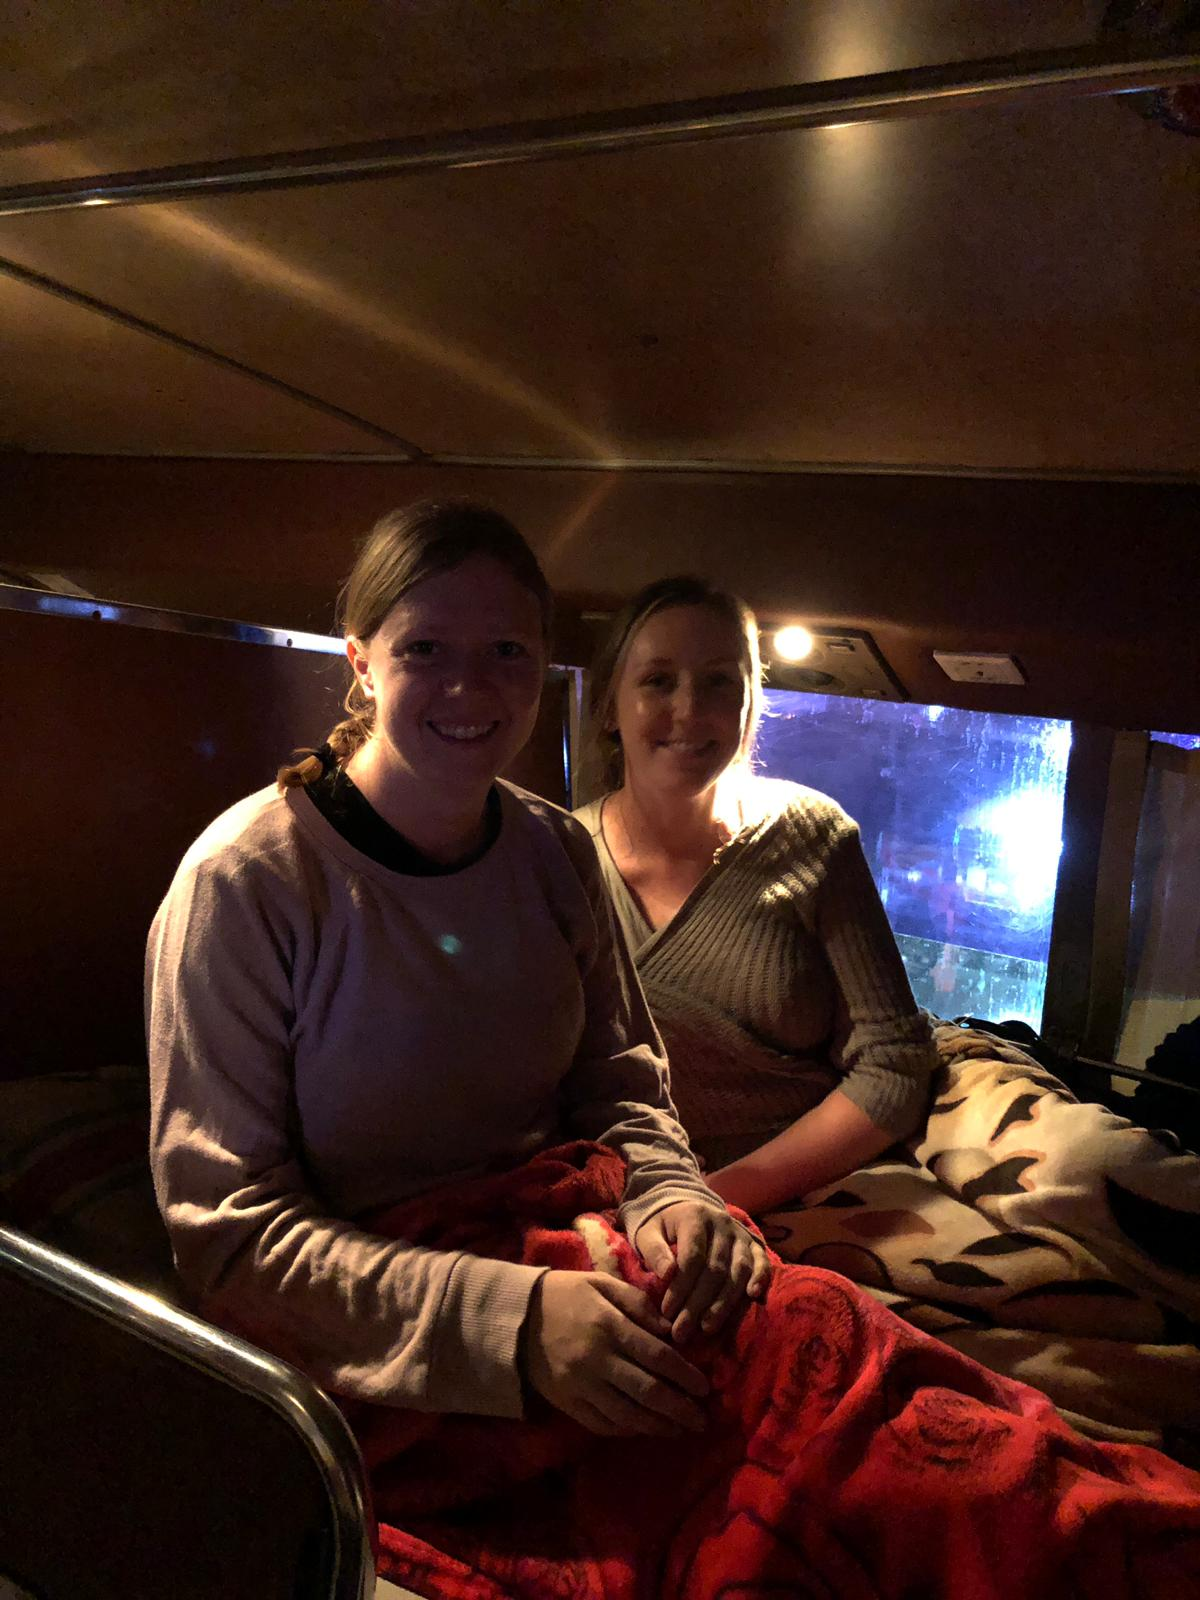 My friend Helen and I with ample room on our very first sleeper bus! This was a fun and hilarious experience to share.